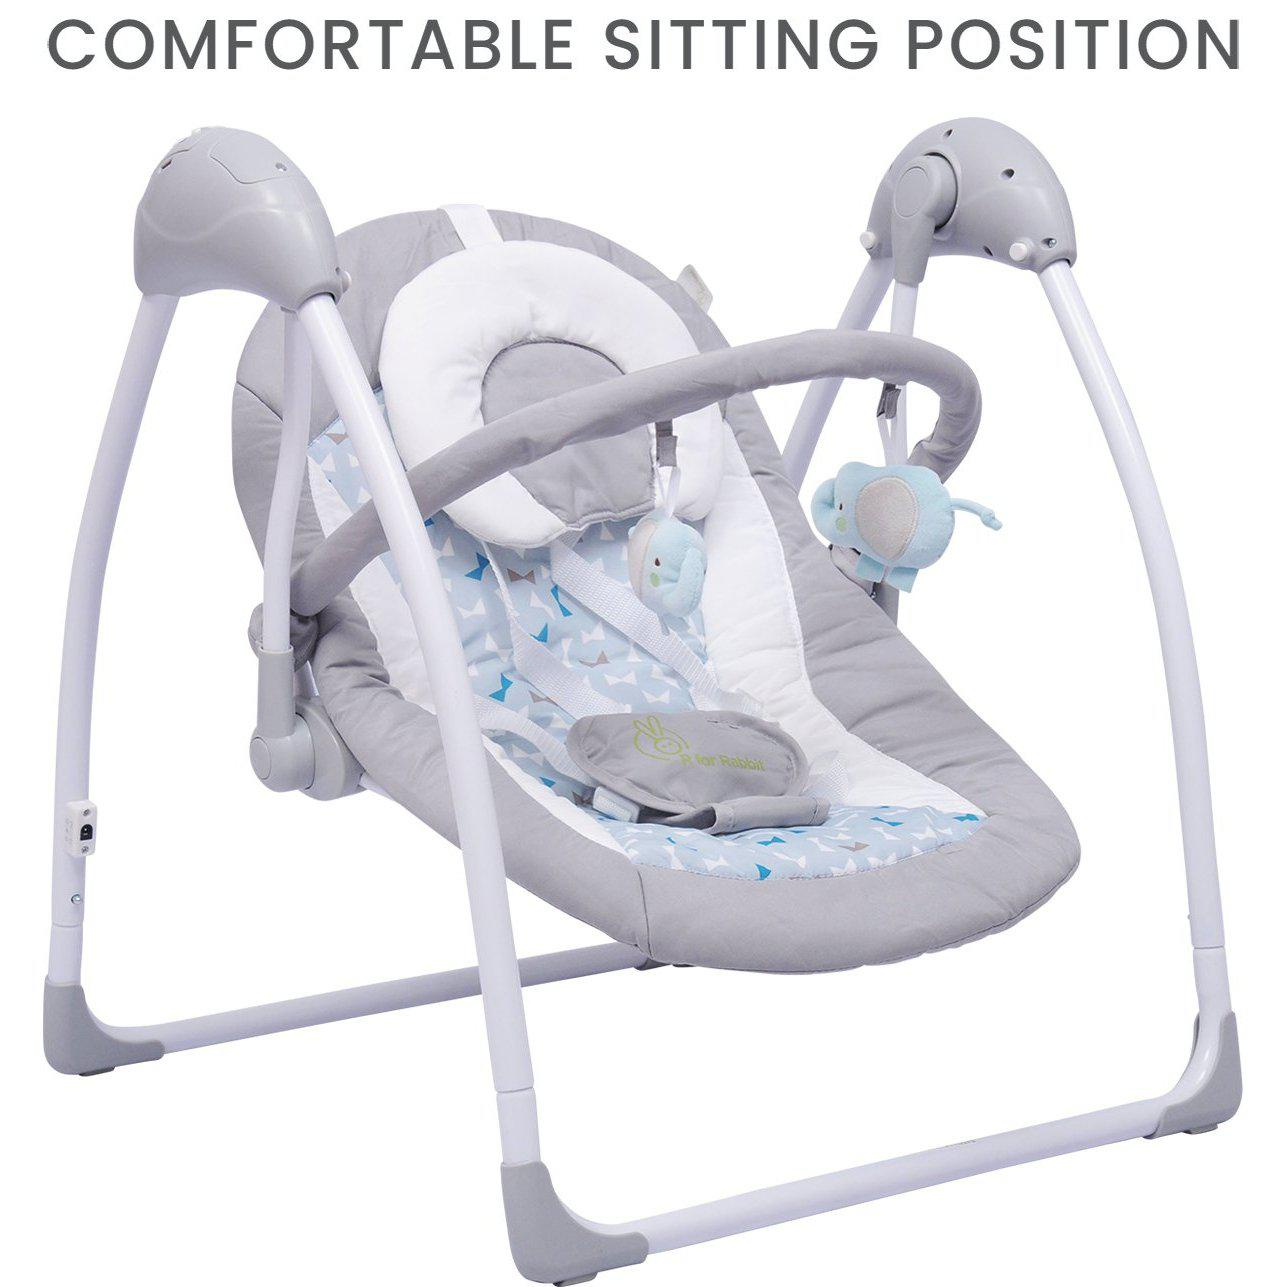 R for Rabbit Snicker - The Playful Automatic Baby Swing (Grey Blue)